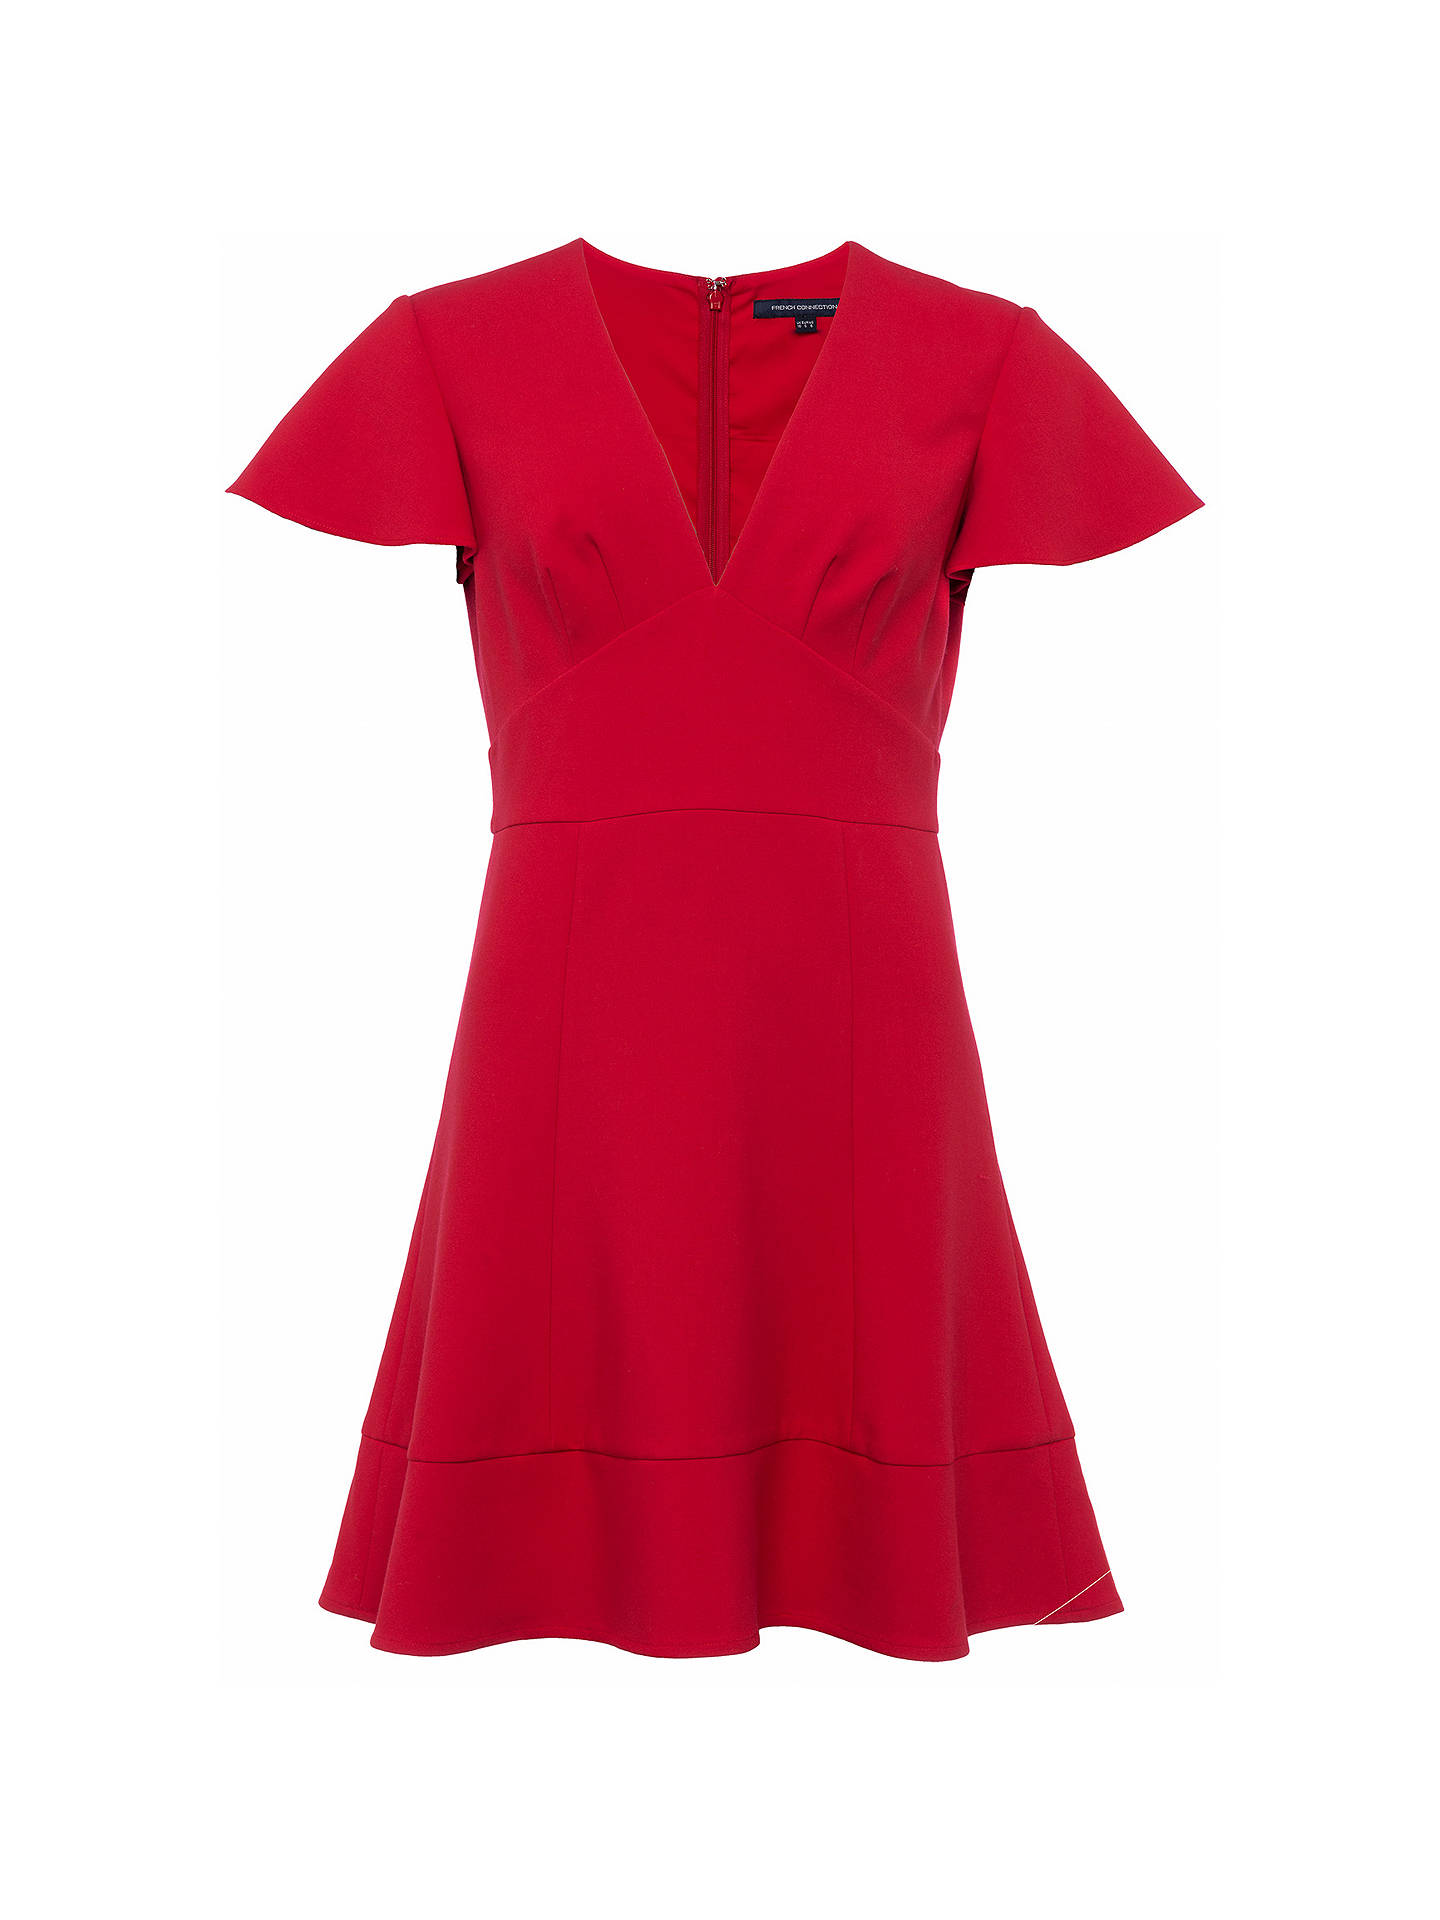 BuyFrench Connection Ruth Dress, Blazer Red, 6 Online at johnlewis.com